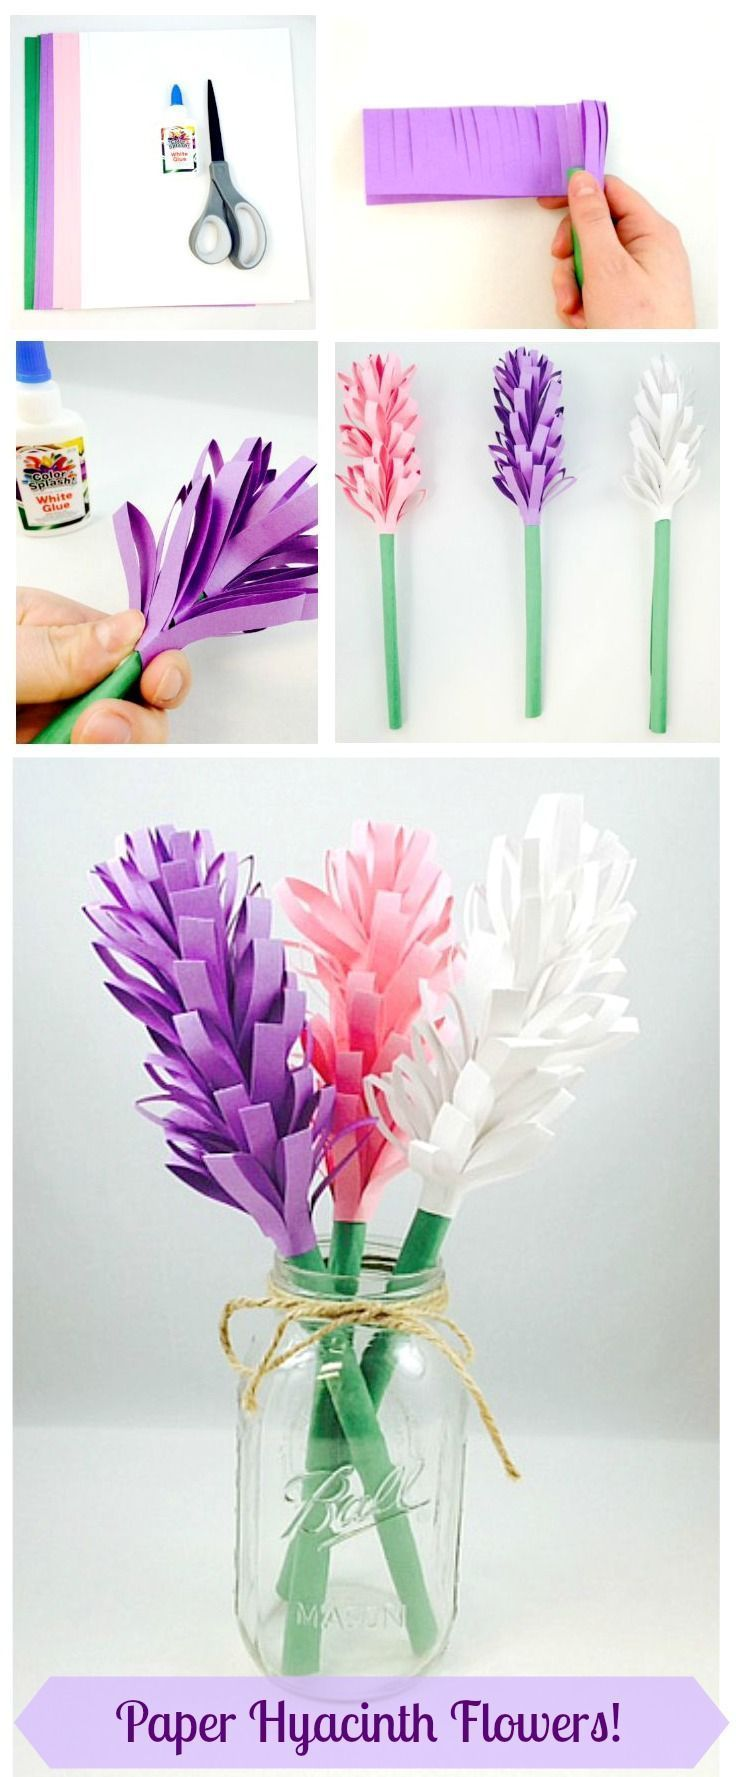 Easy spring crafts for seniors - Easy Paper Hyacinth Flowers